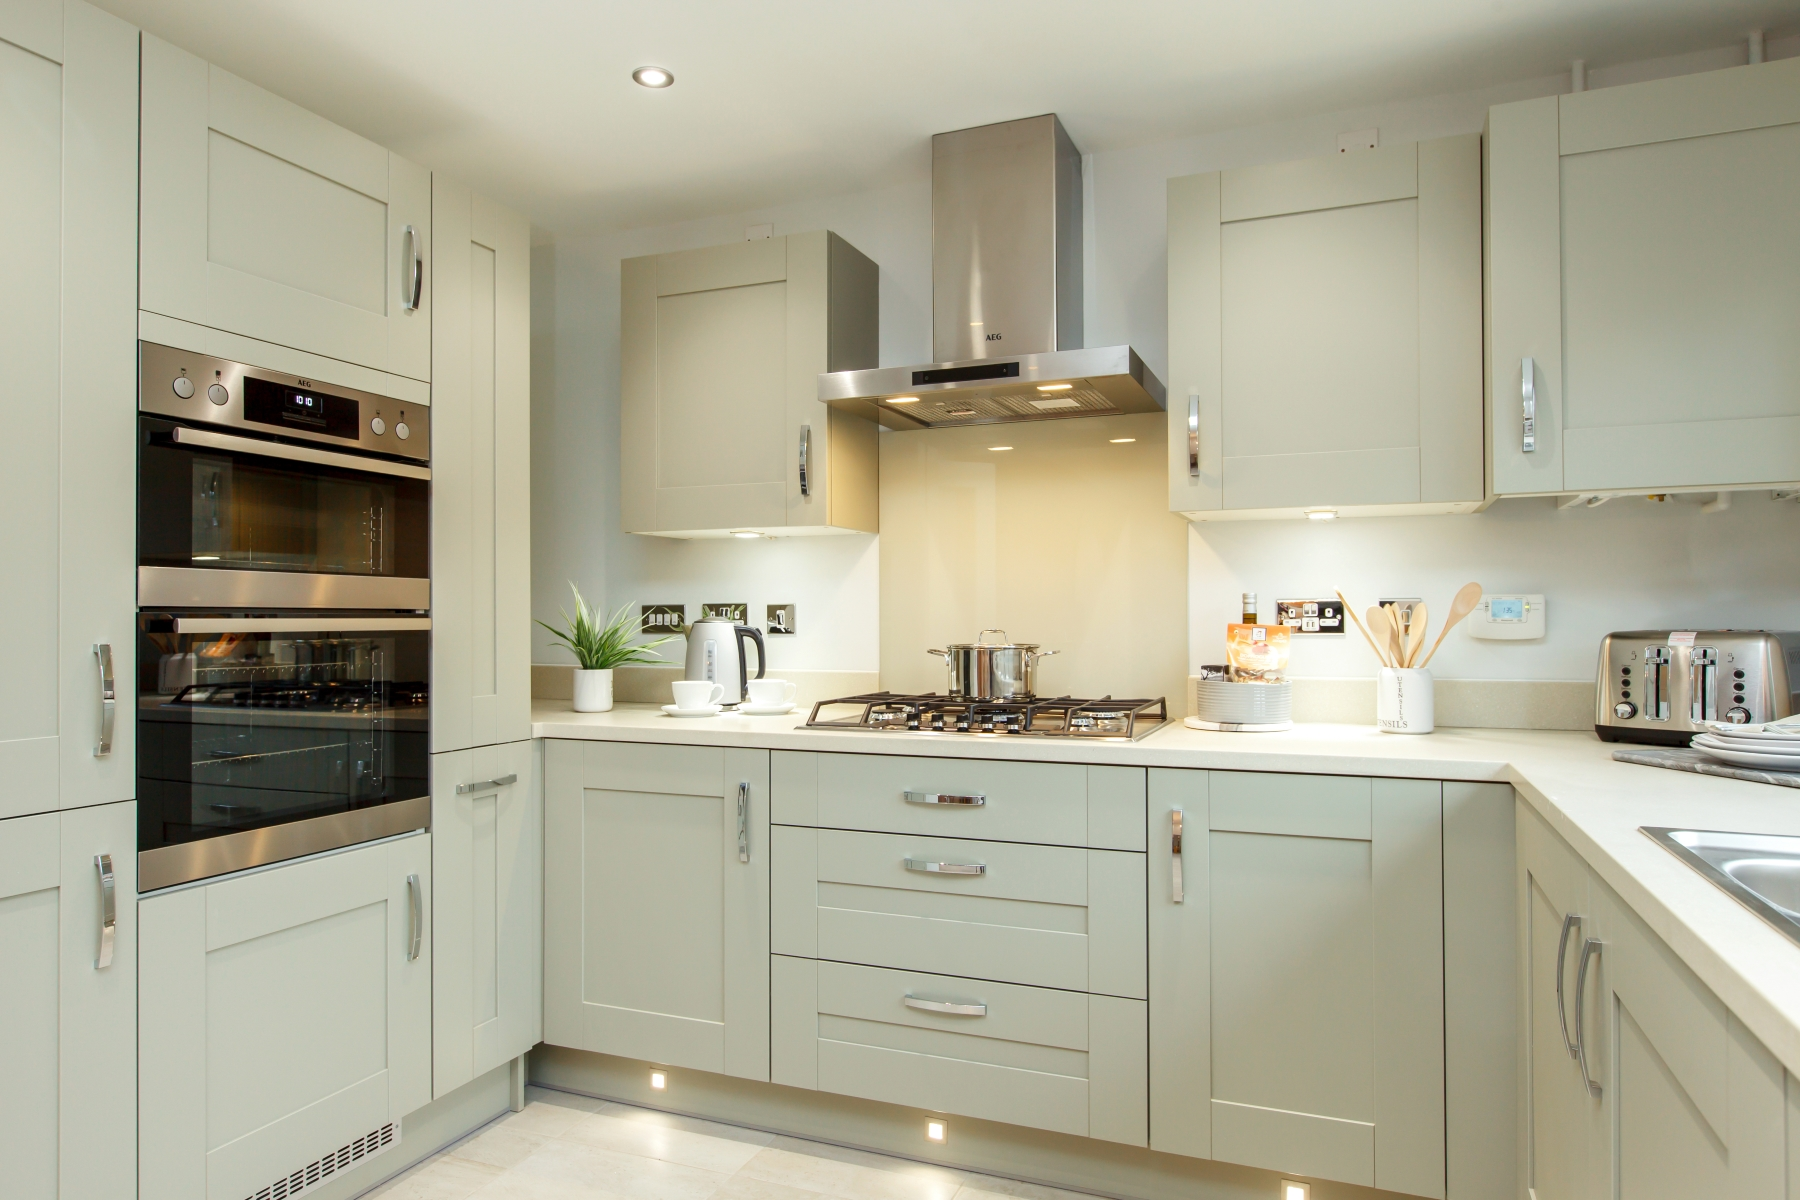 Shelford_Kitchen_Alt_1